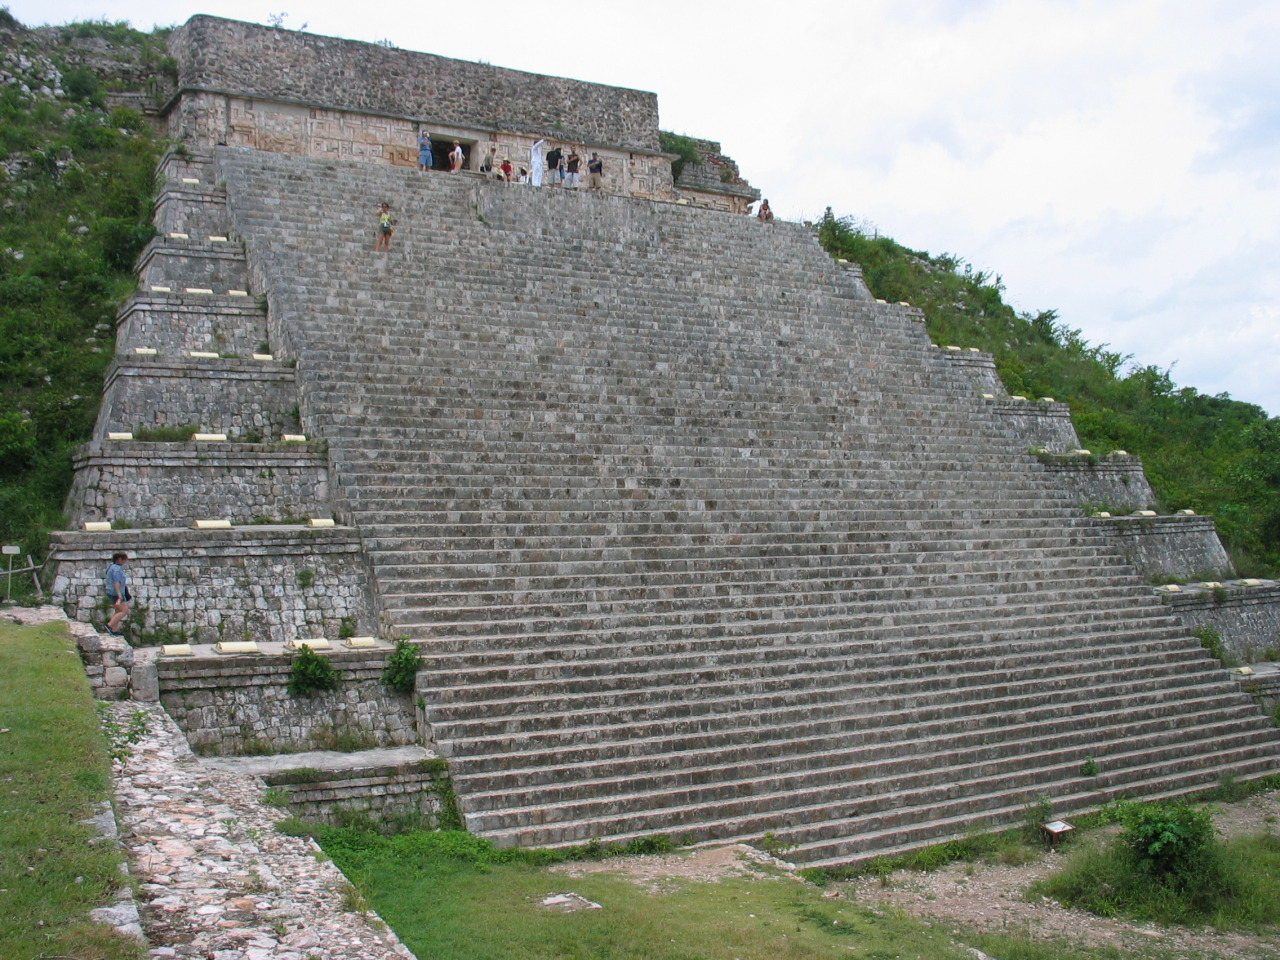 The Great Pyramid at the Mayan ruins of Uxmal, Mexico. Photo courtesy Keith Pomakis